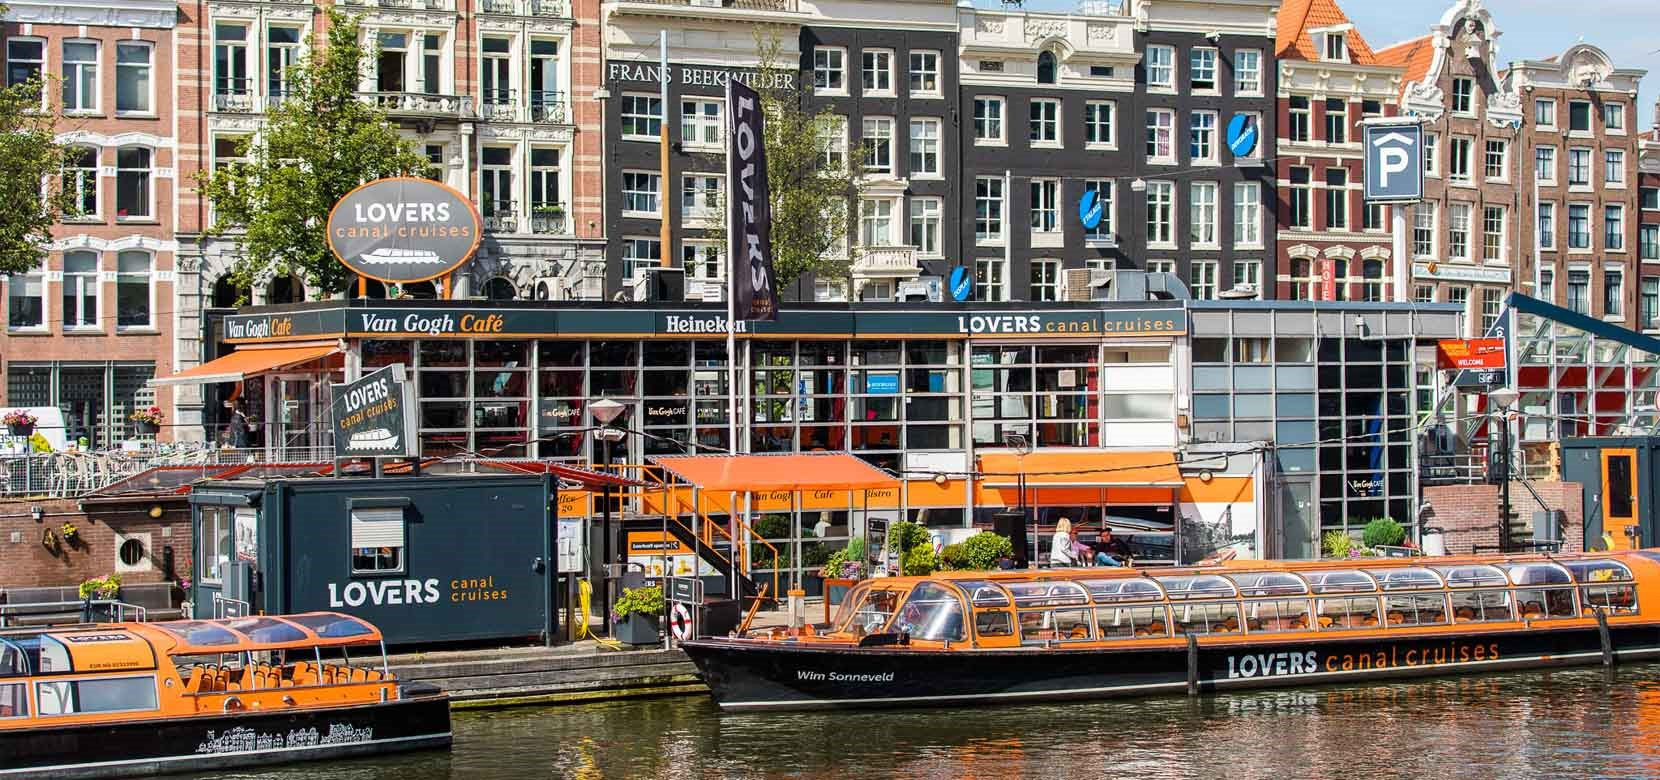 Amsterdam Canal Cruise (departs near the Anne Frank House)